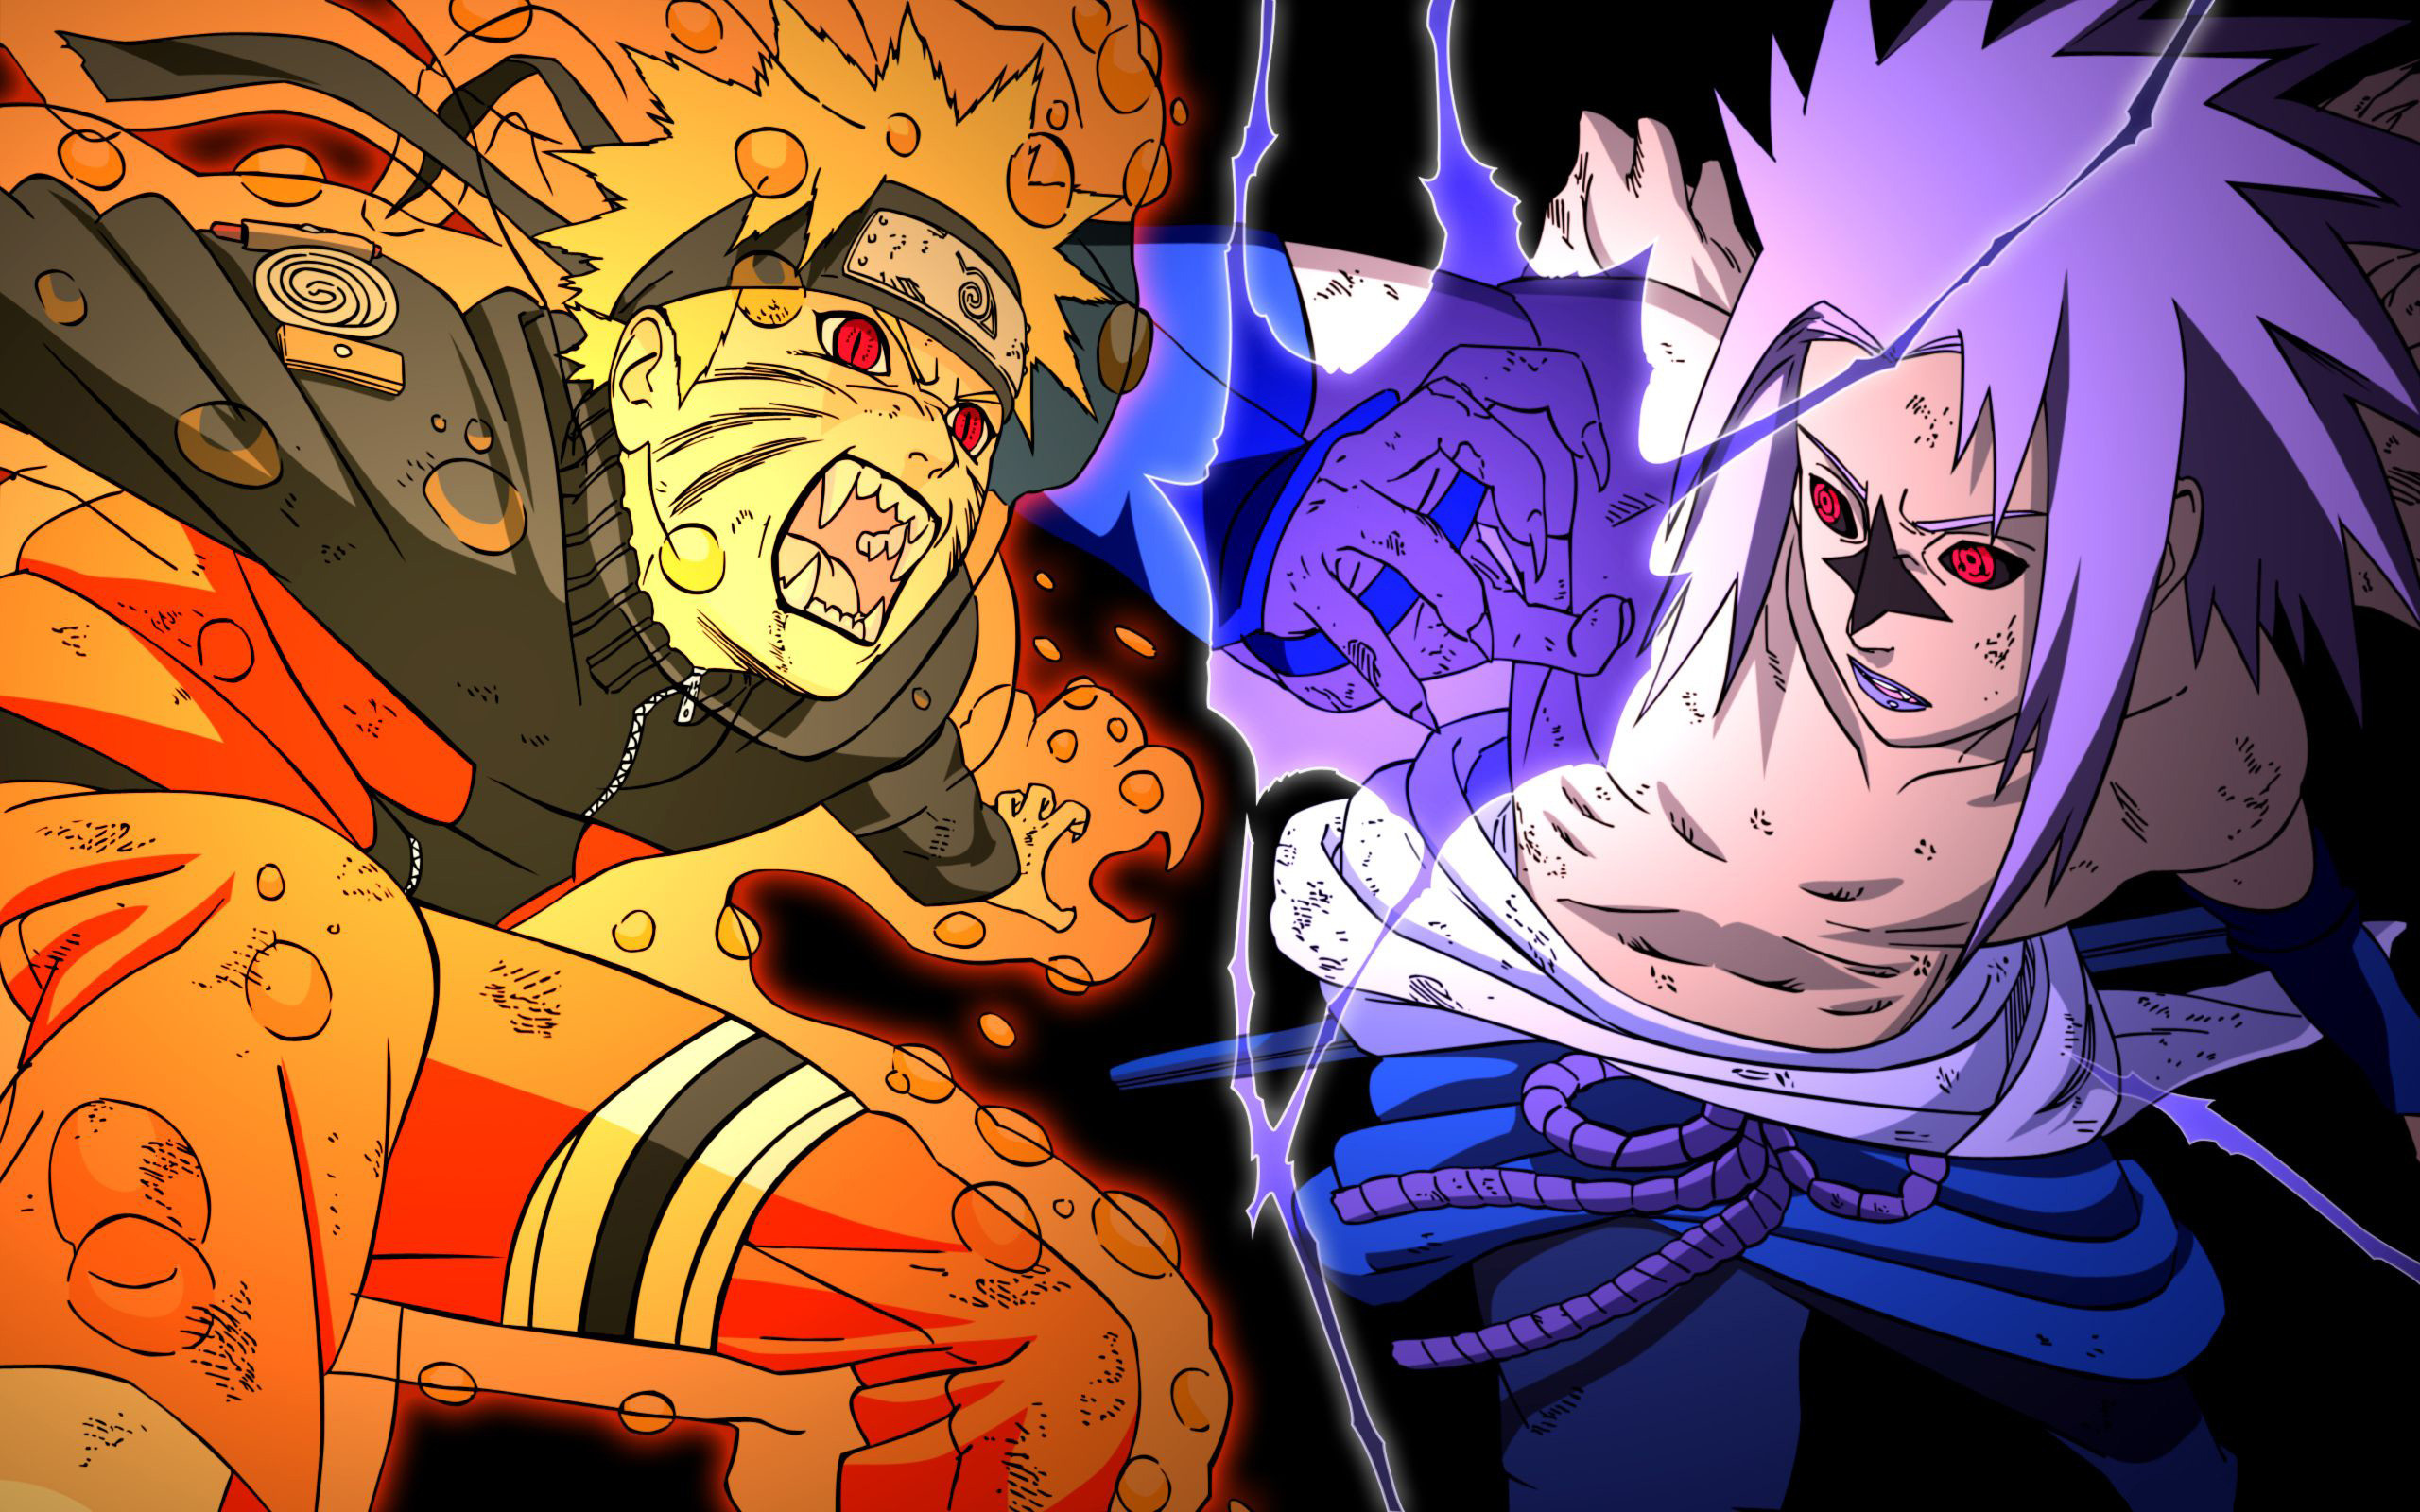 Naruto vs sasuke wallpaper wallpapertag - Naruto as sasuke ...